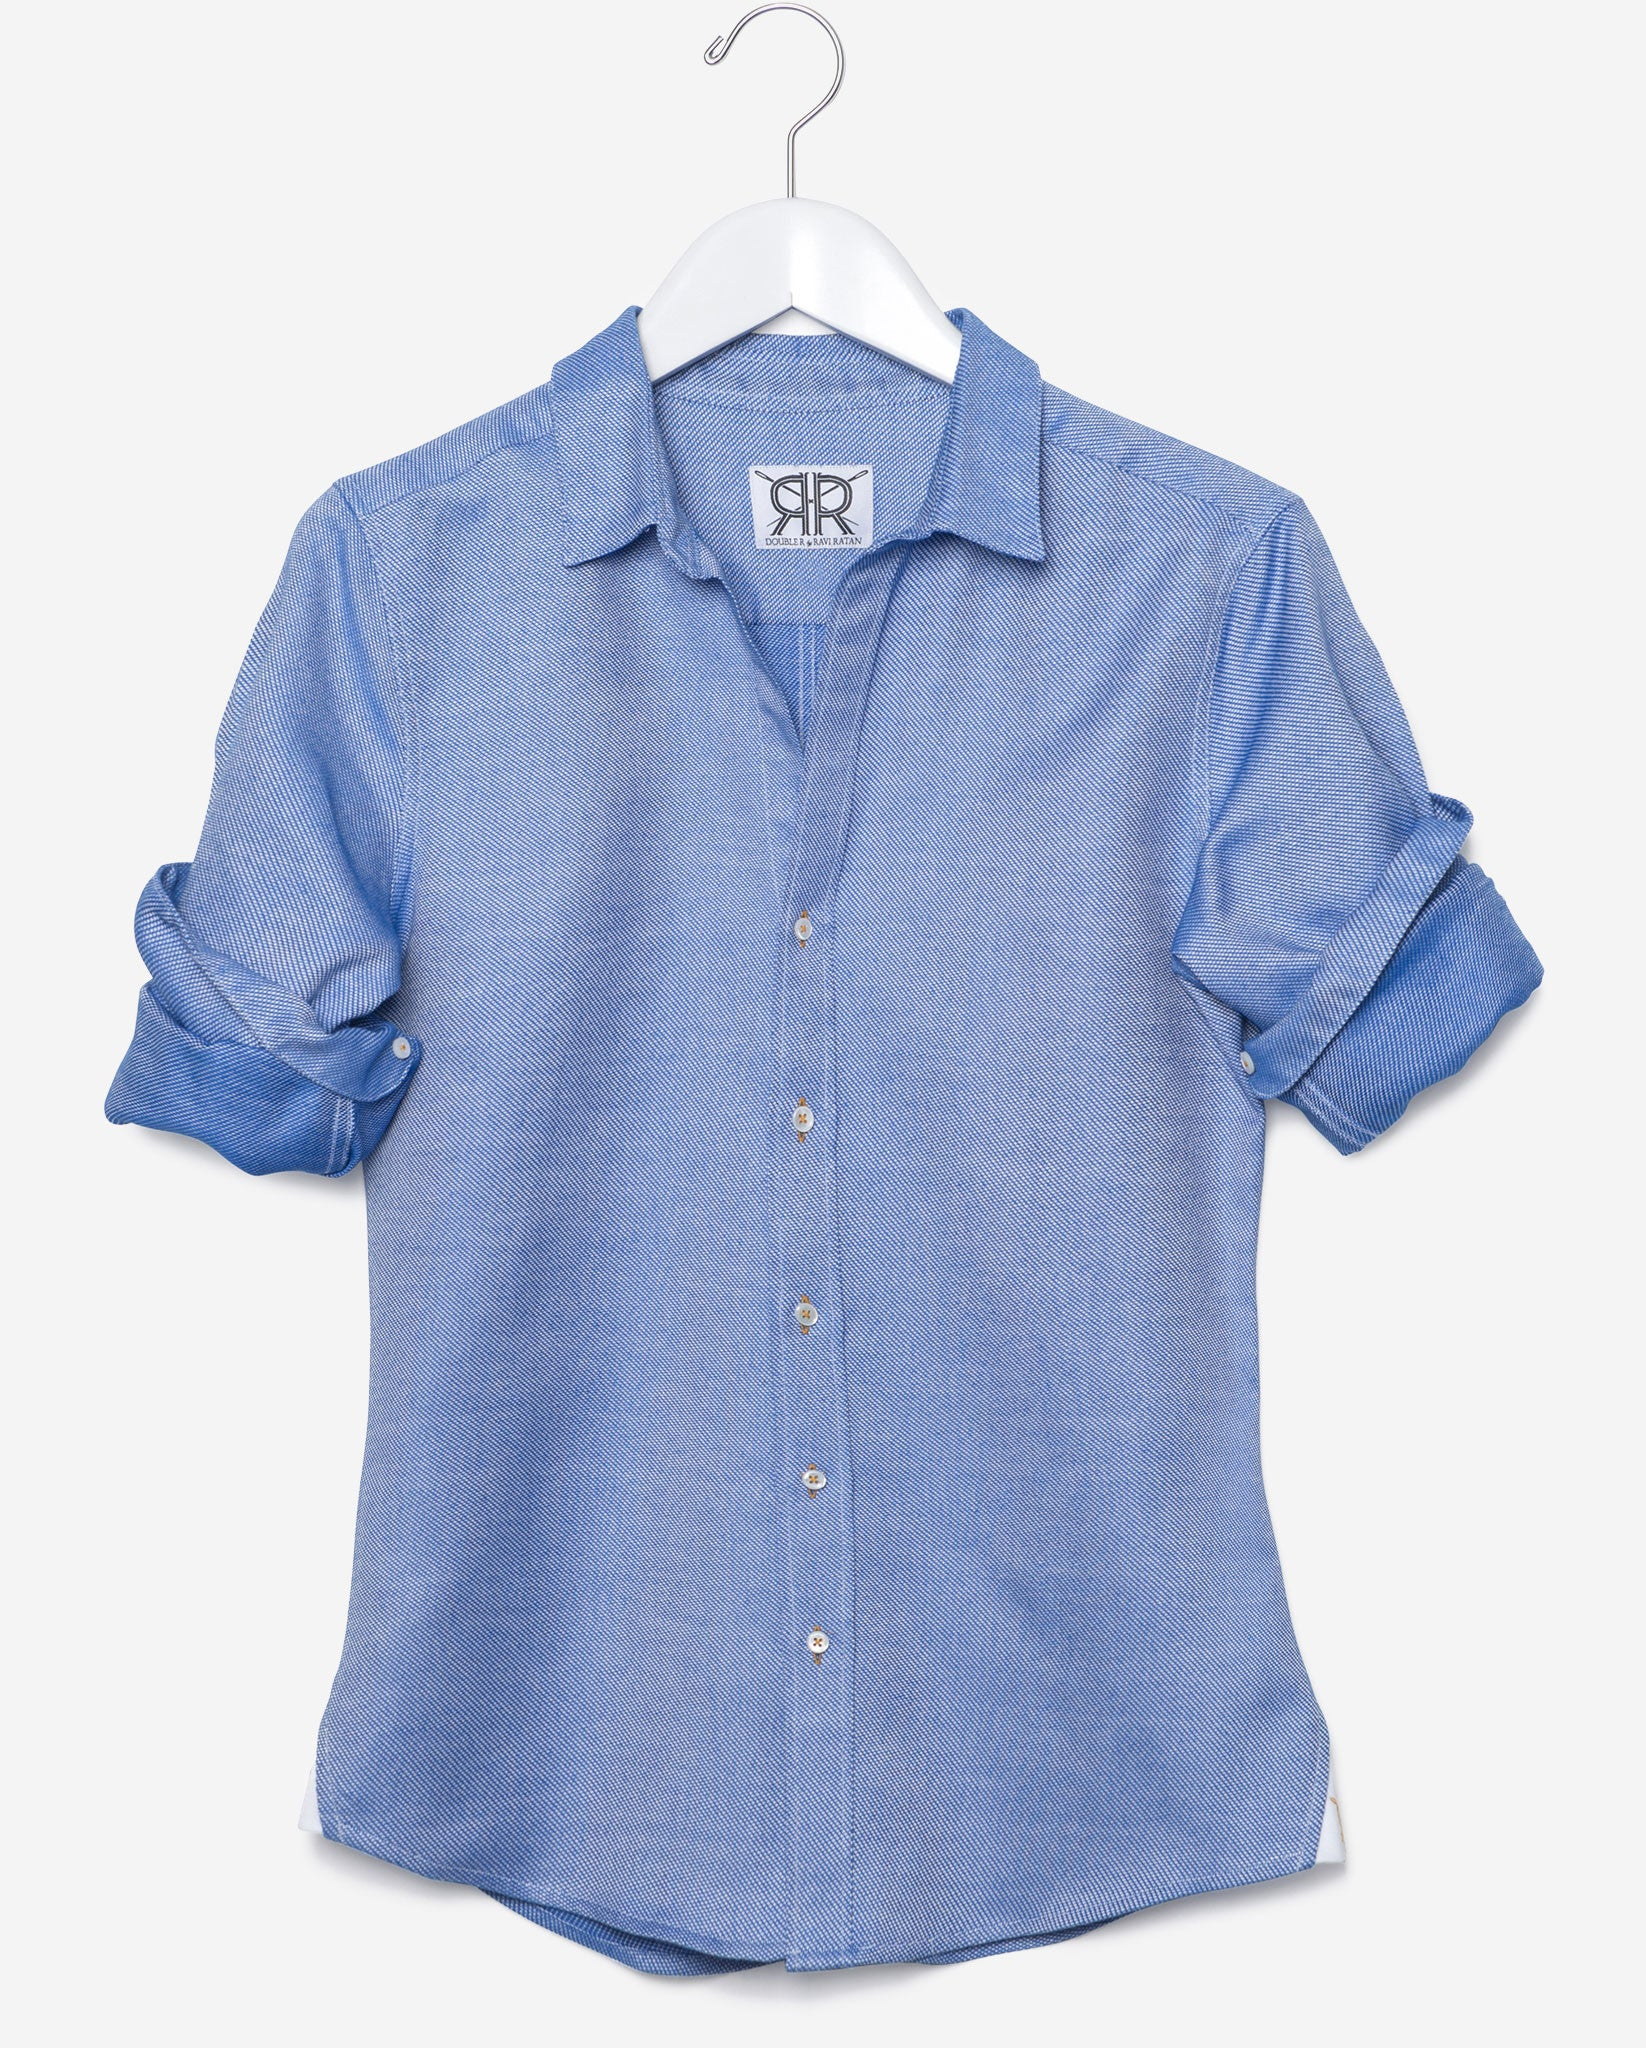 Tailored Shirt - Royal Blue Oxford Women's Button Down by Double R ...